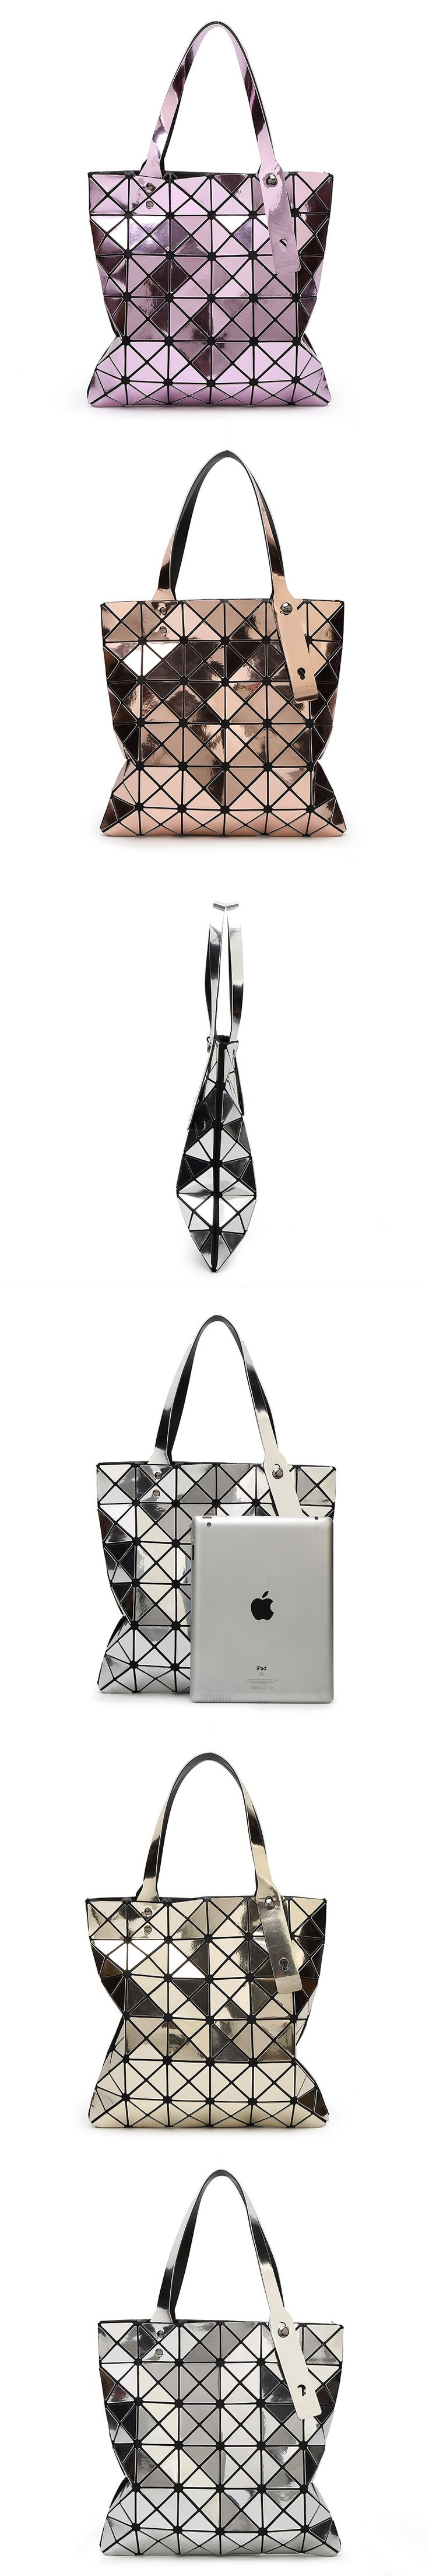 Famous brands Bao Bao style Designer women bag Diamond Lattice Tote geometry Specular reflections handbags Top-Handle Bags